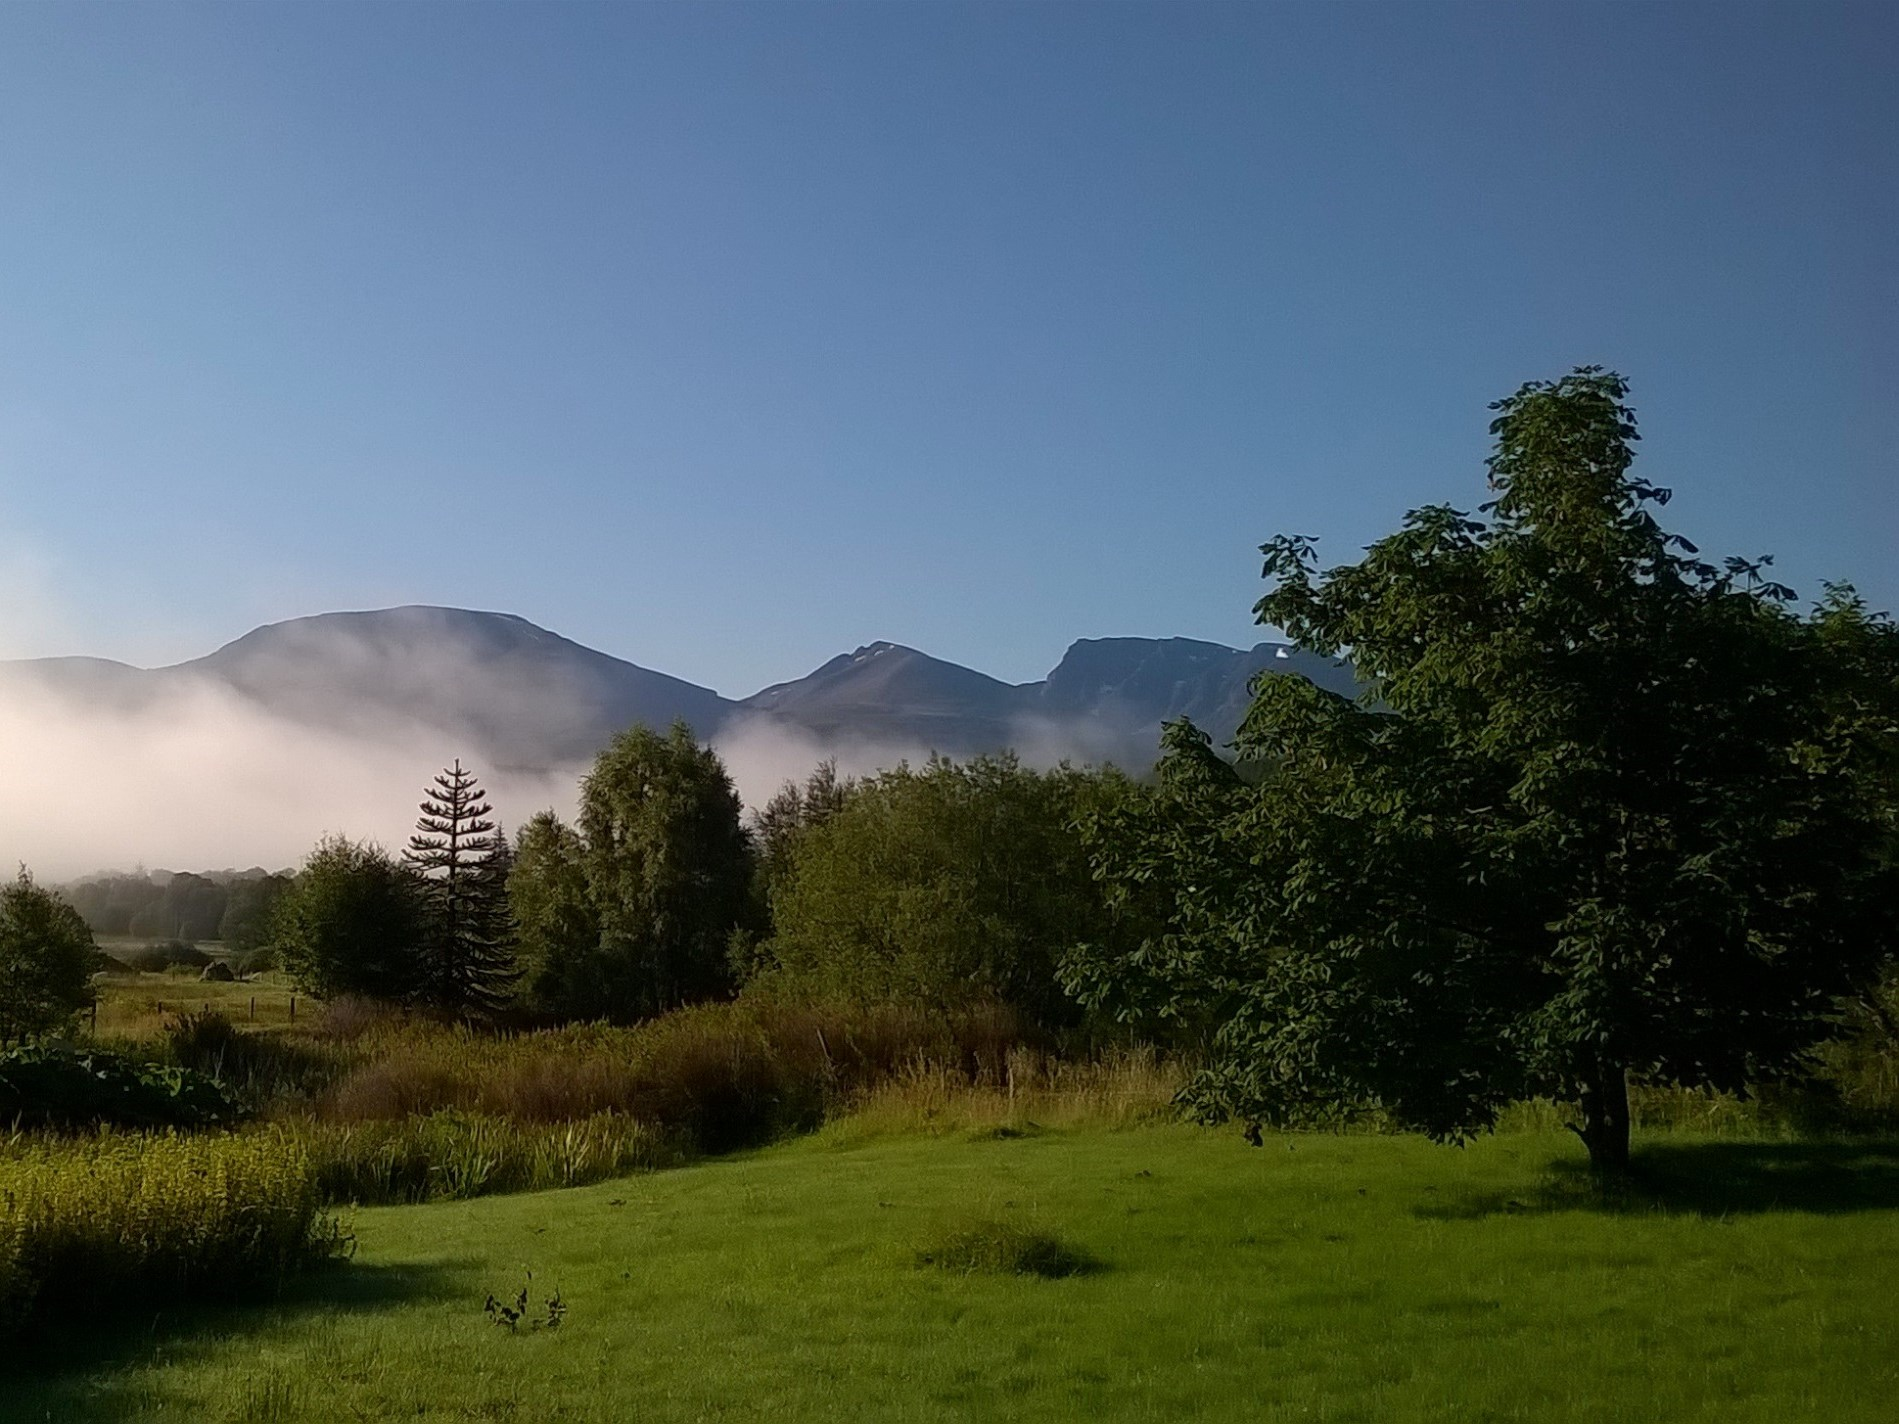 Views from the property's grounds over Ben Nevis